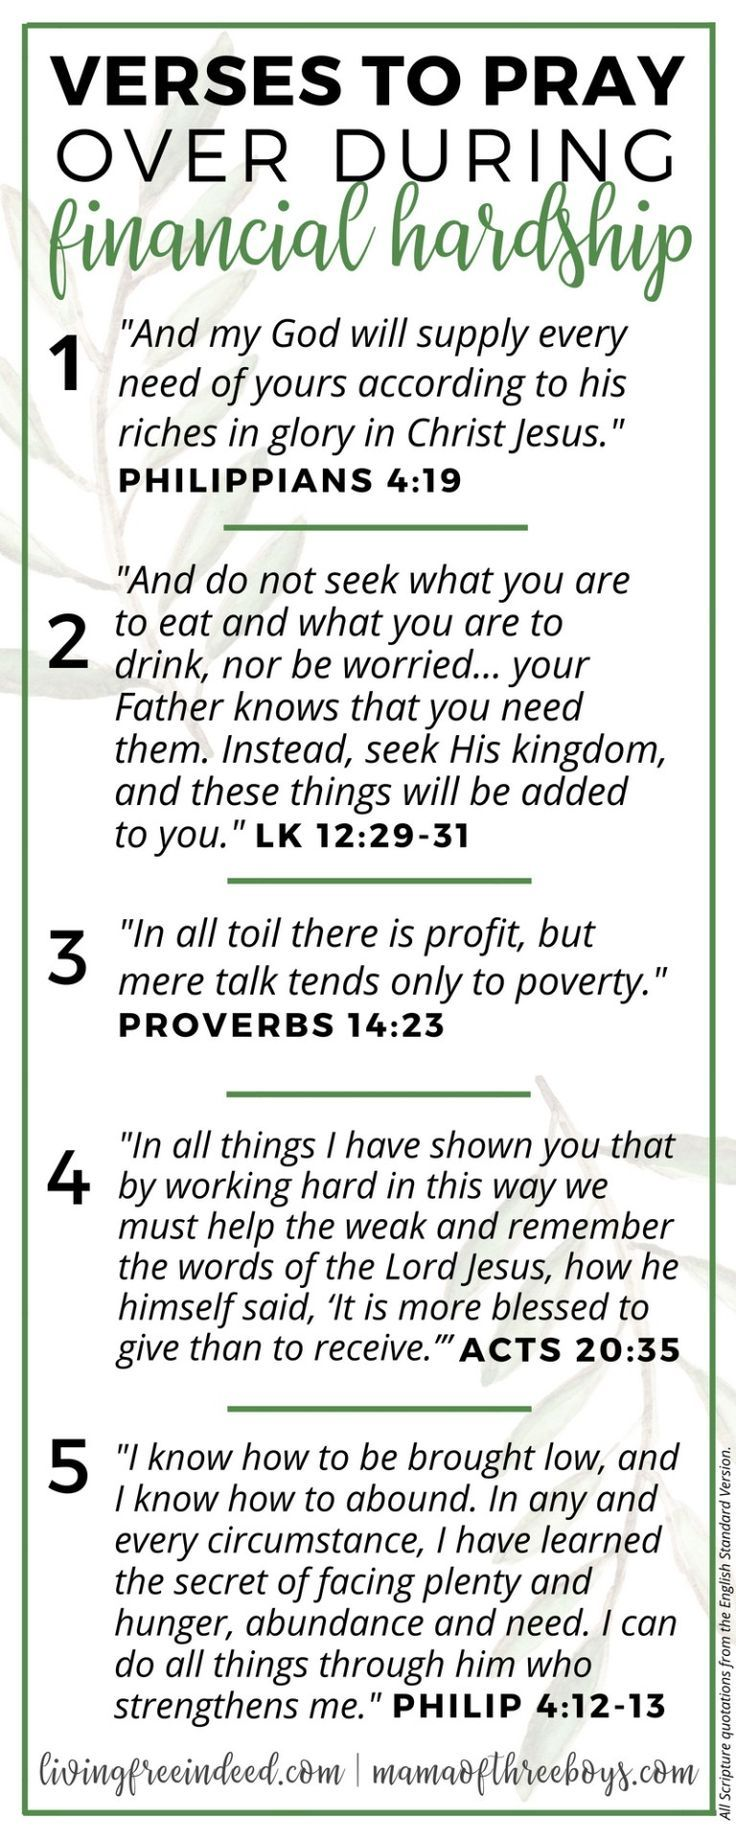 6 Verses To Pray During Financial Hardship | Scripture Study